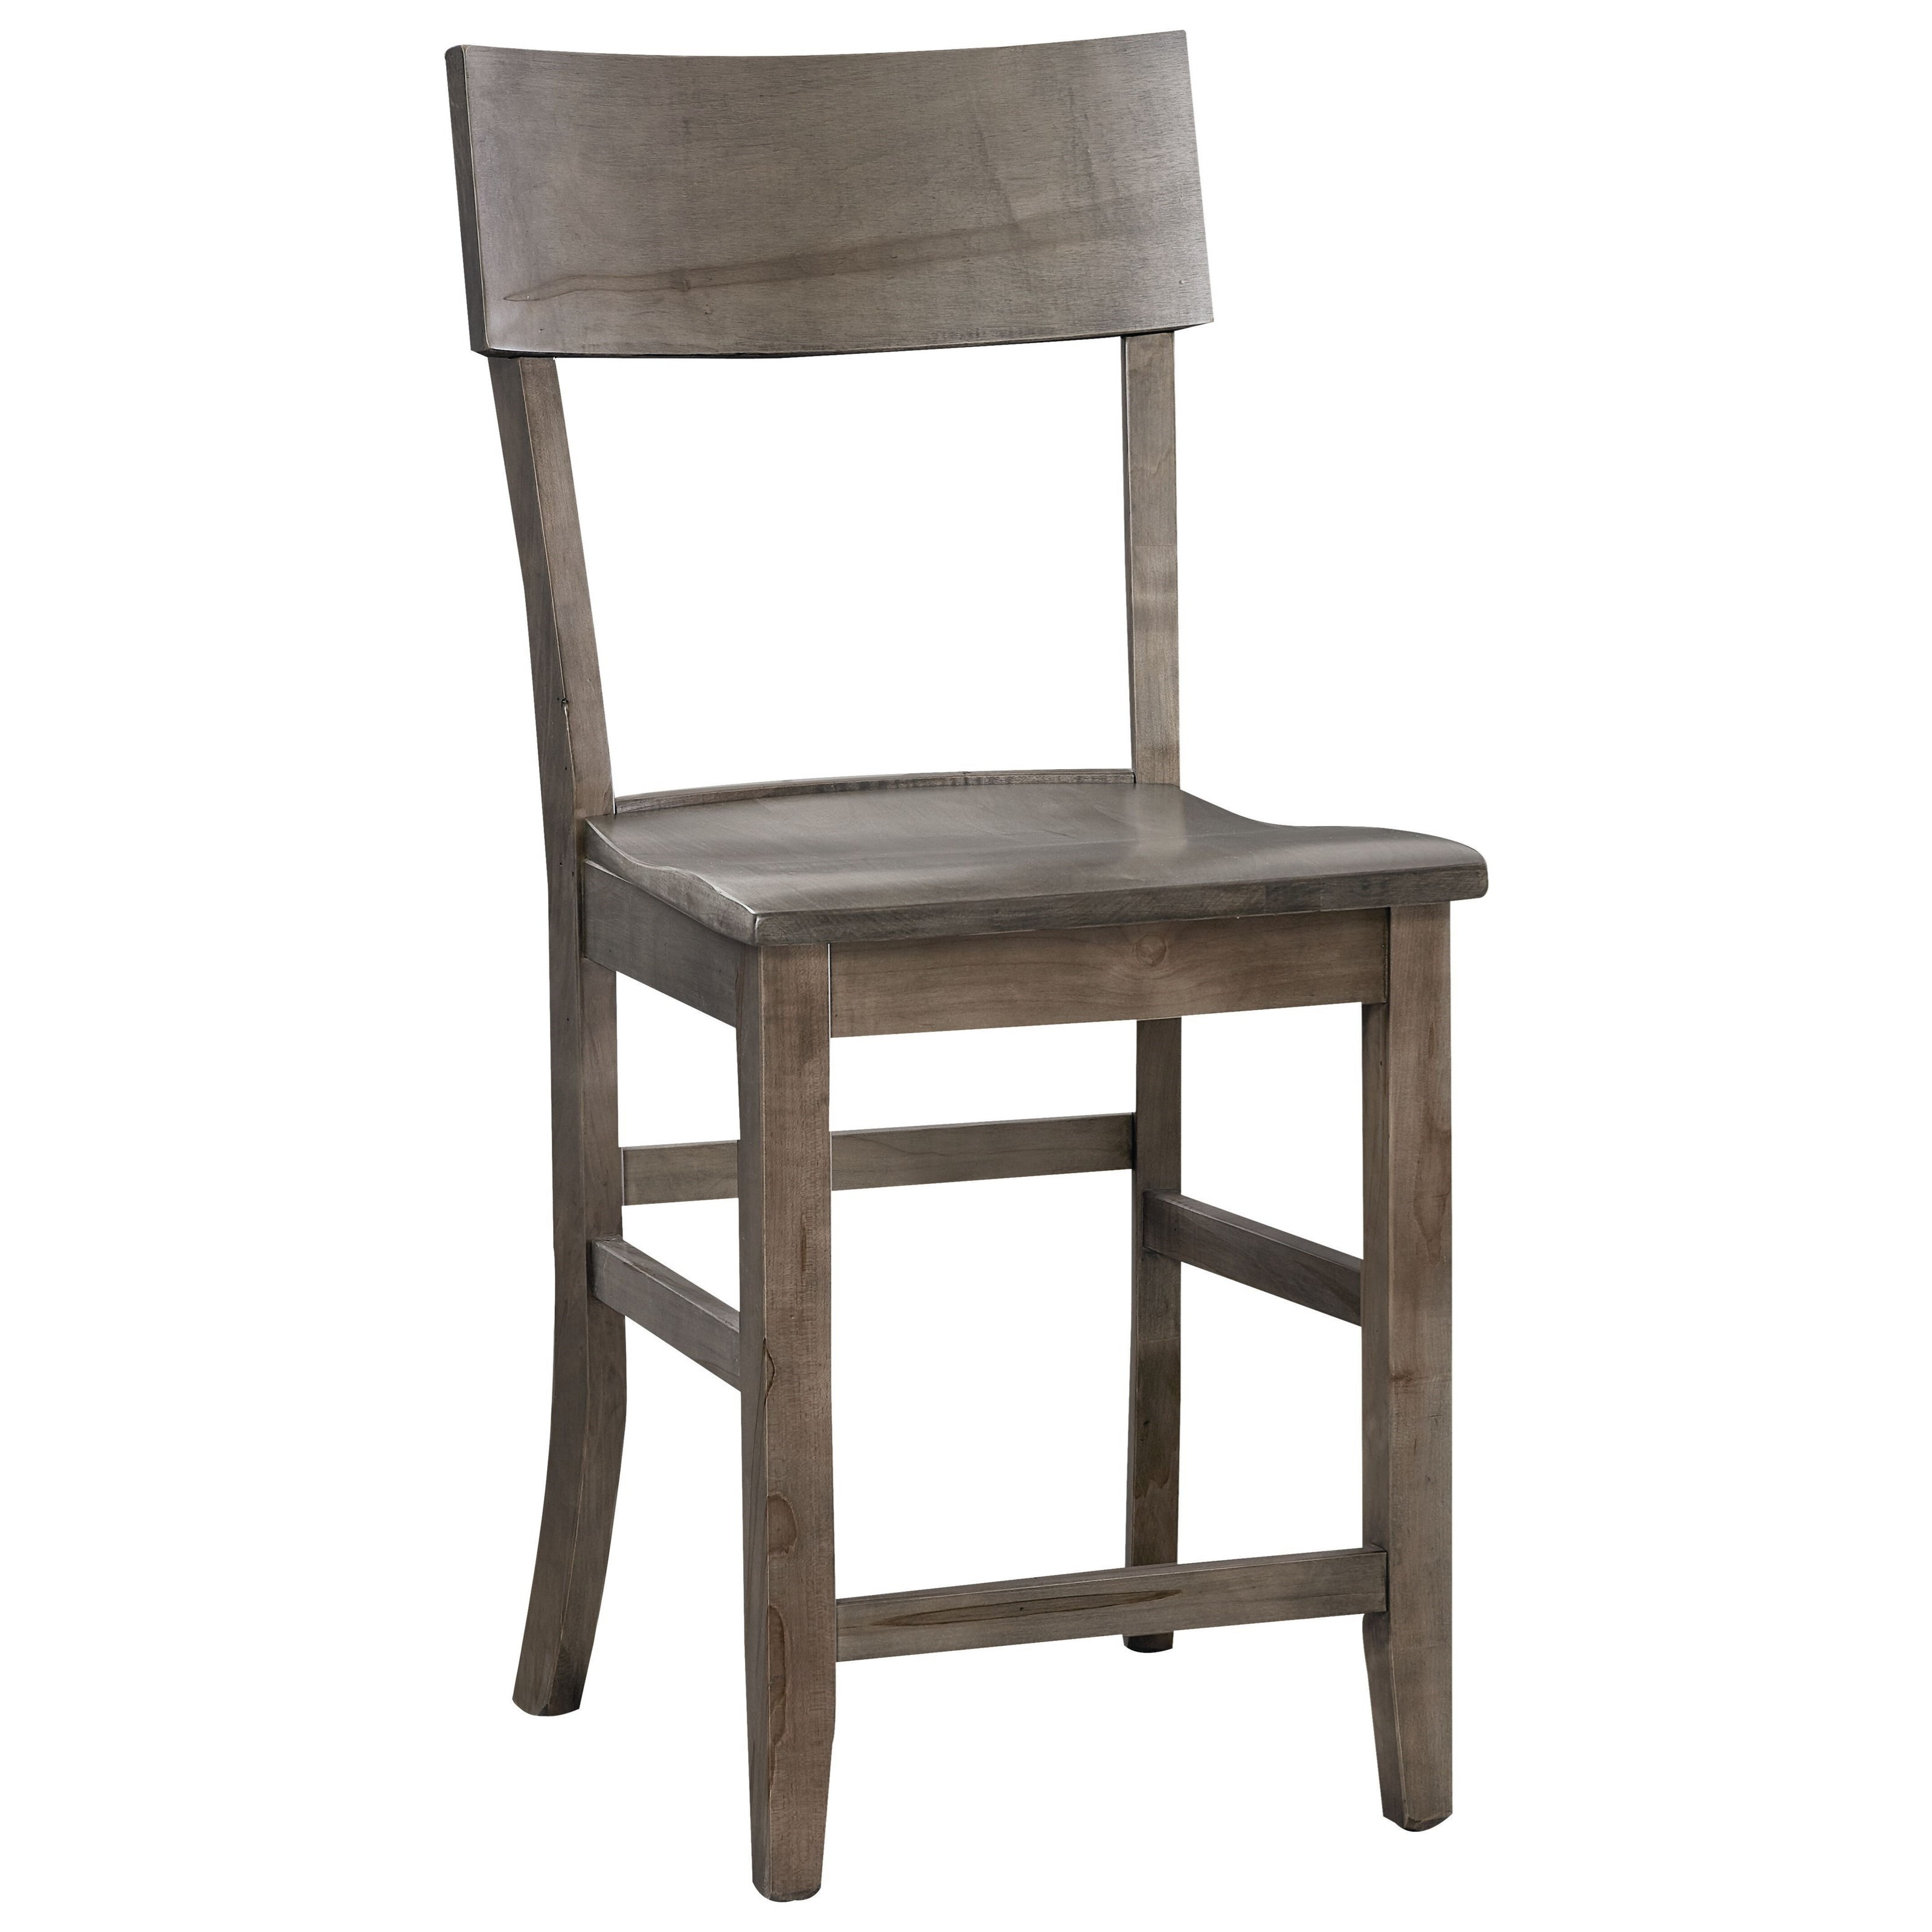 BenchMade Counter Height Stool by Bassett at Bassett of Cool Springs